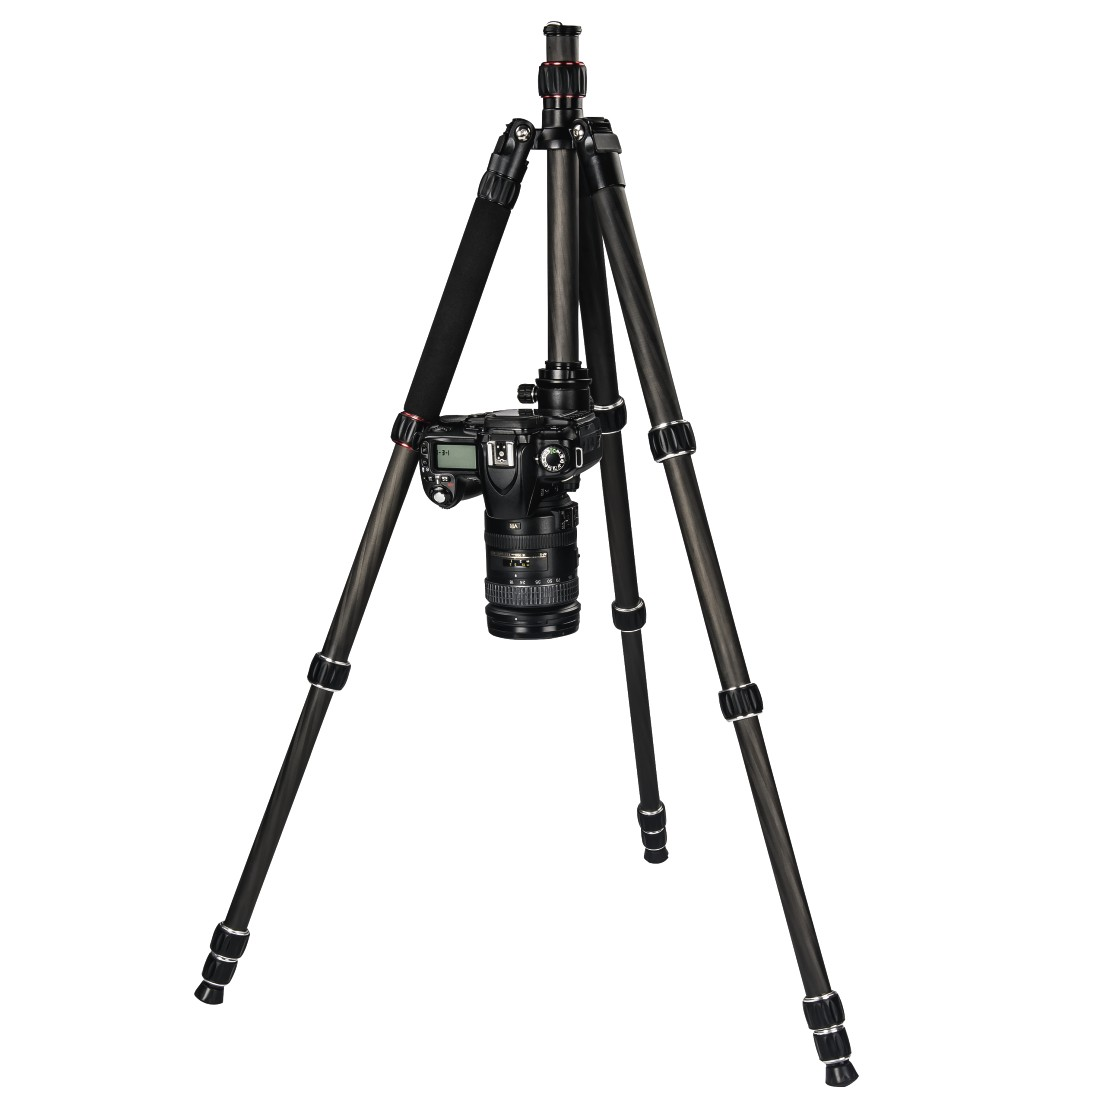 awx3 High-Res Appliance 3 - Hama, Professional Premium Duo Carbon Tripod, 153 - Ball